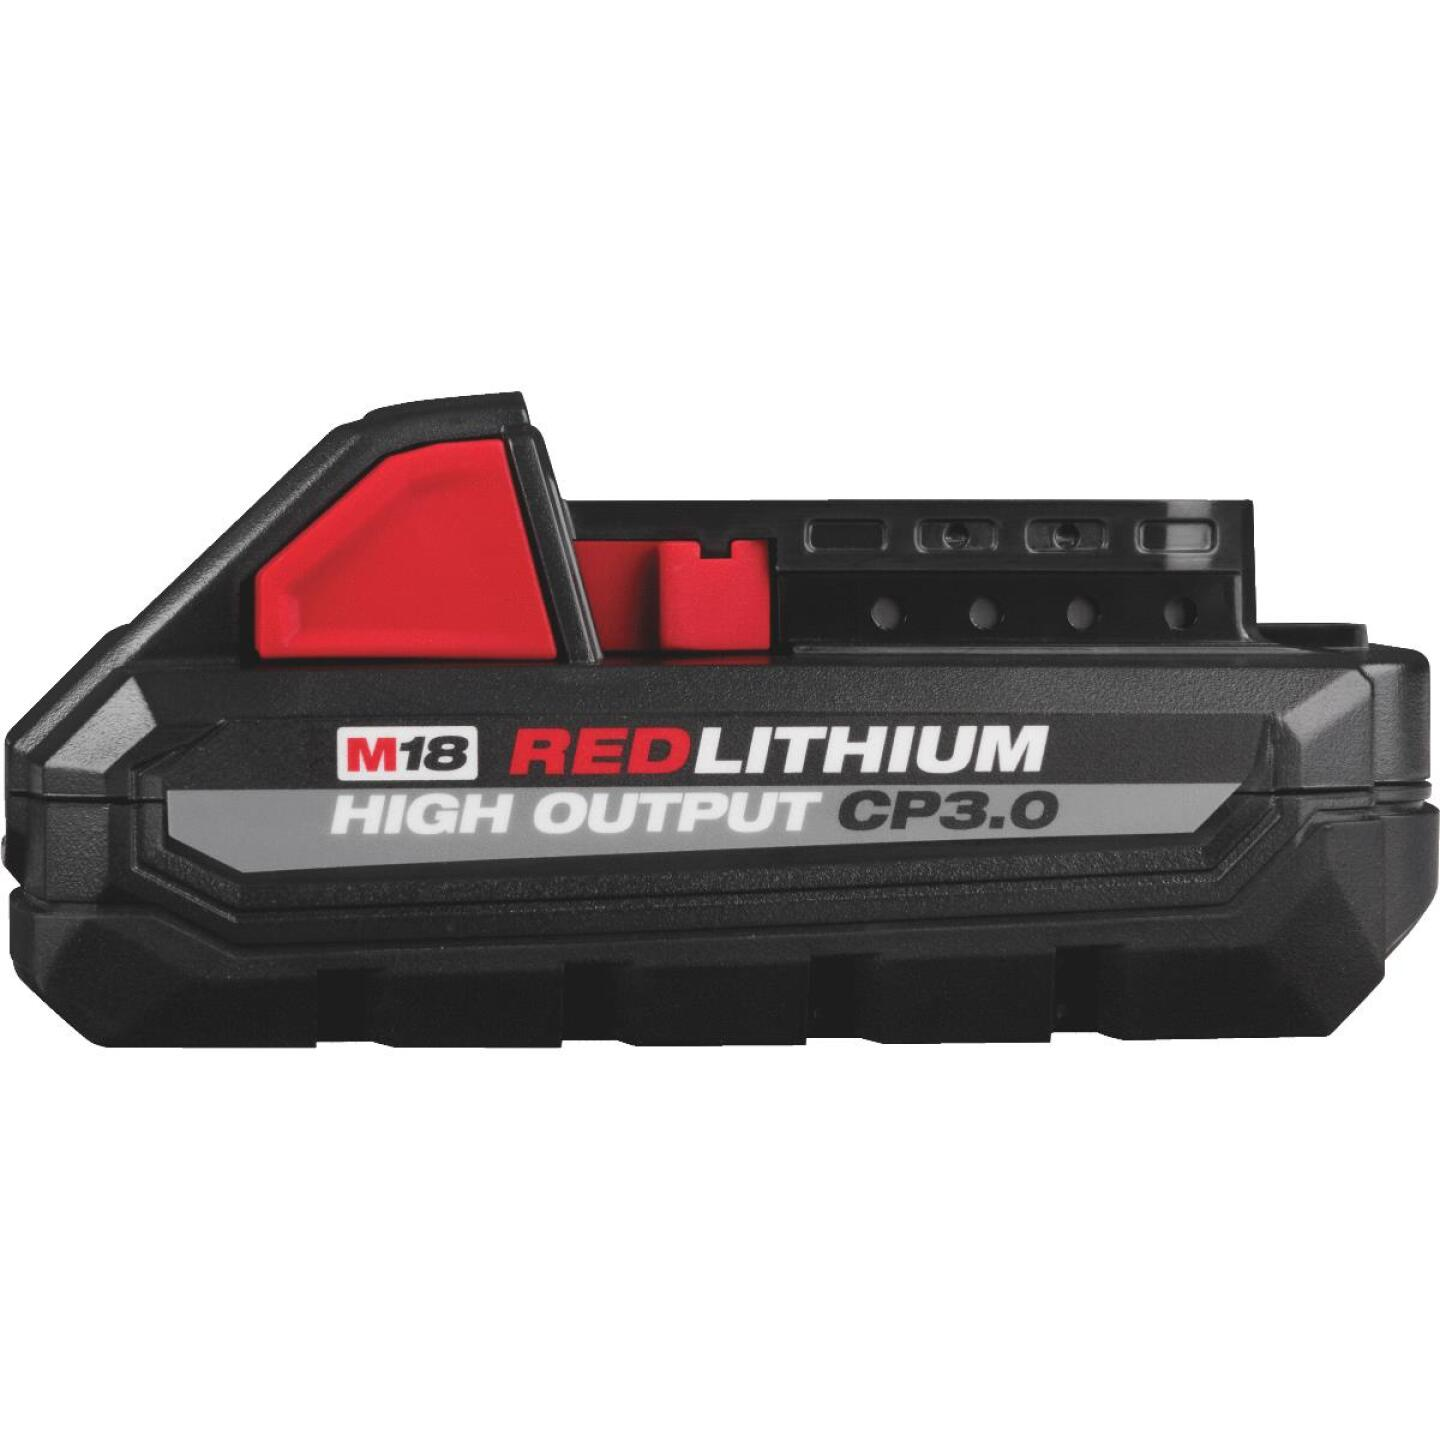 Milwaukee M18 REDLITHUM 18 Volt Lithium-Ion 3.0 Ah High Output CP3.0 Tool Battery Image 1